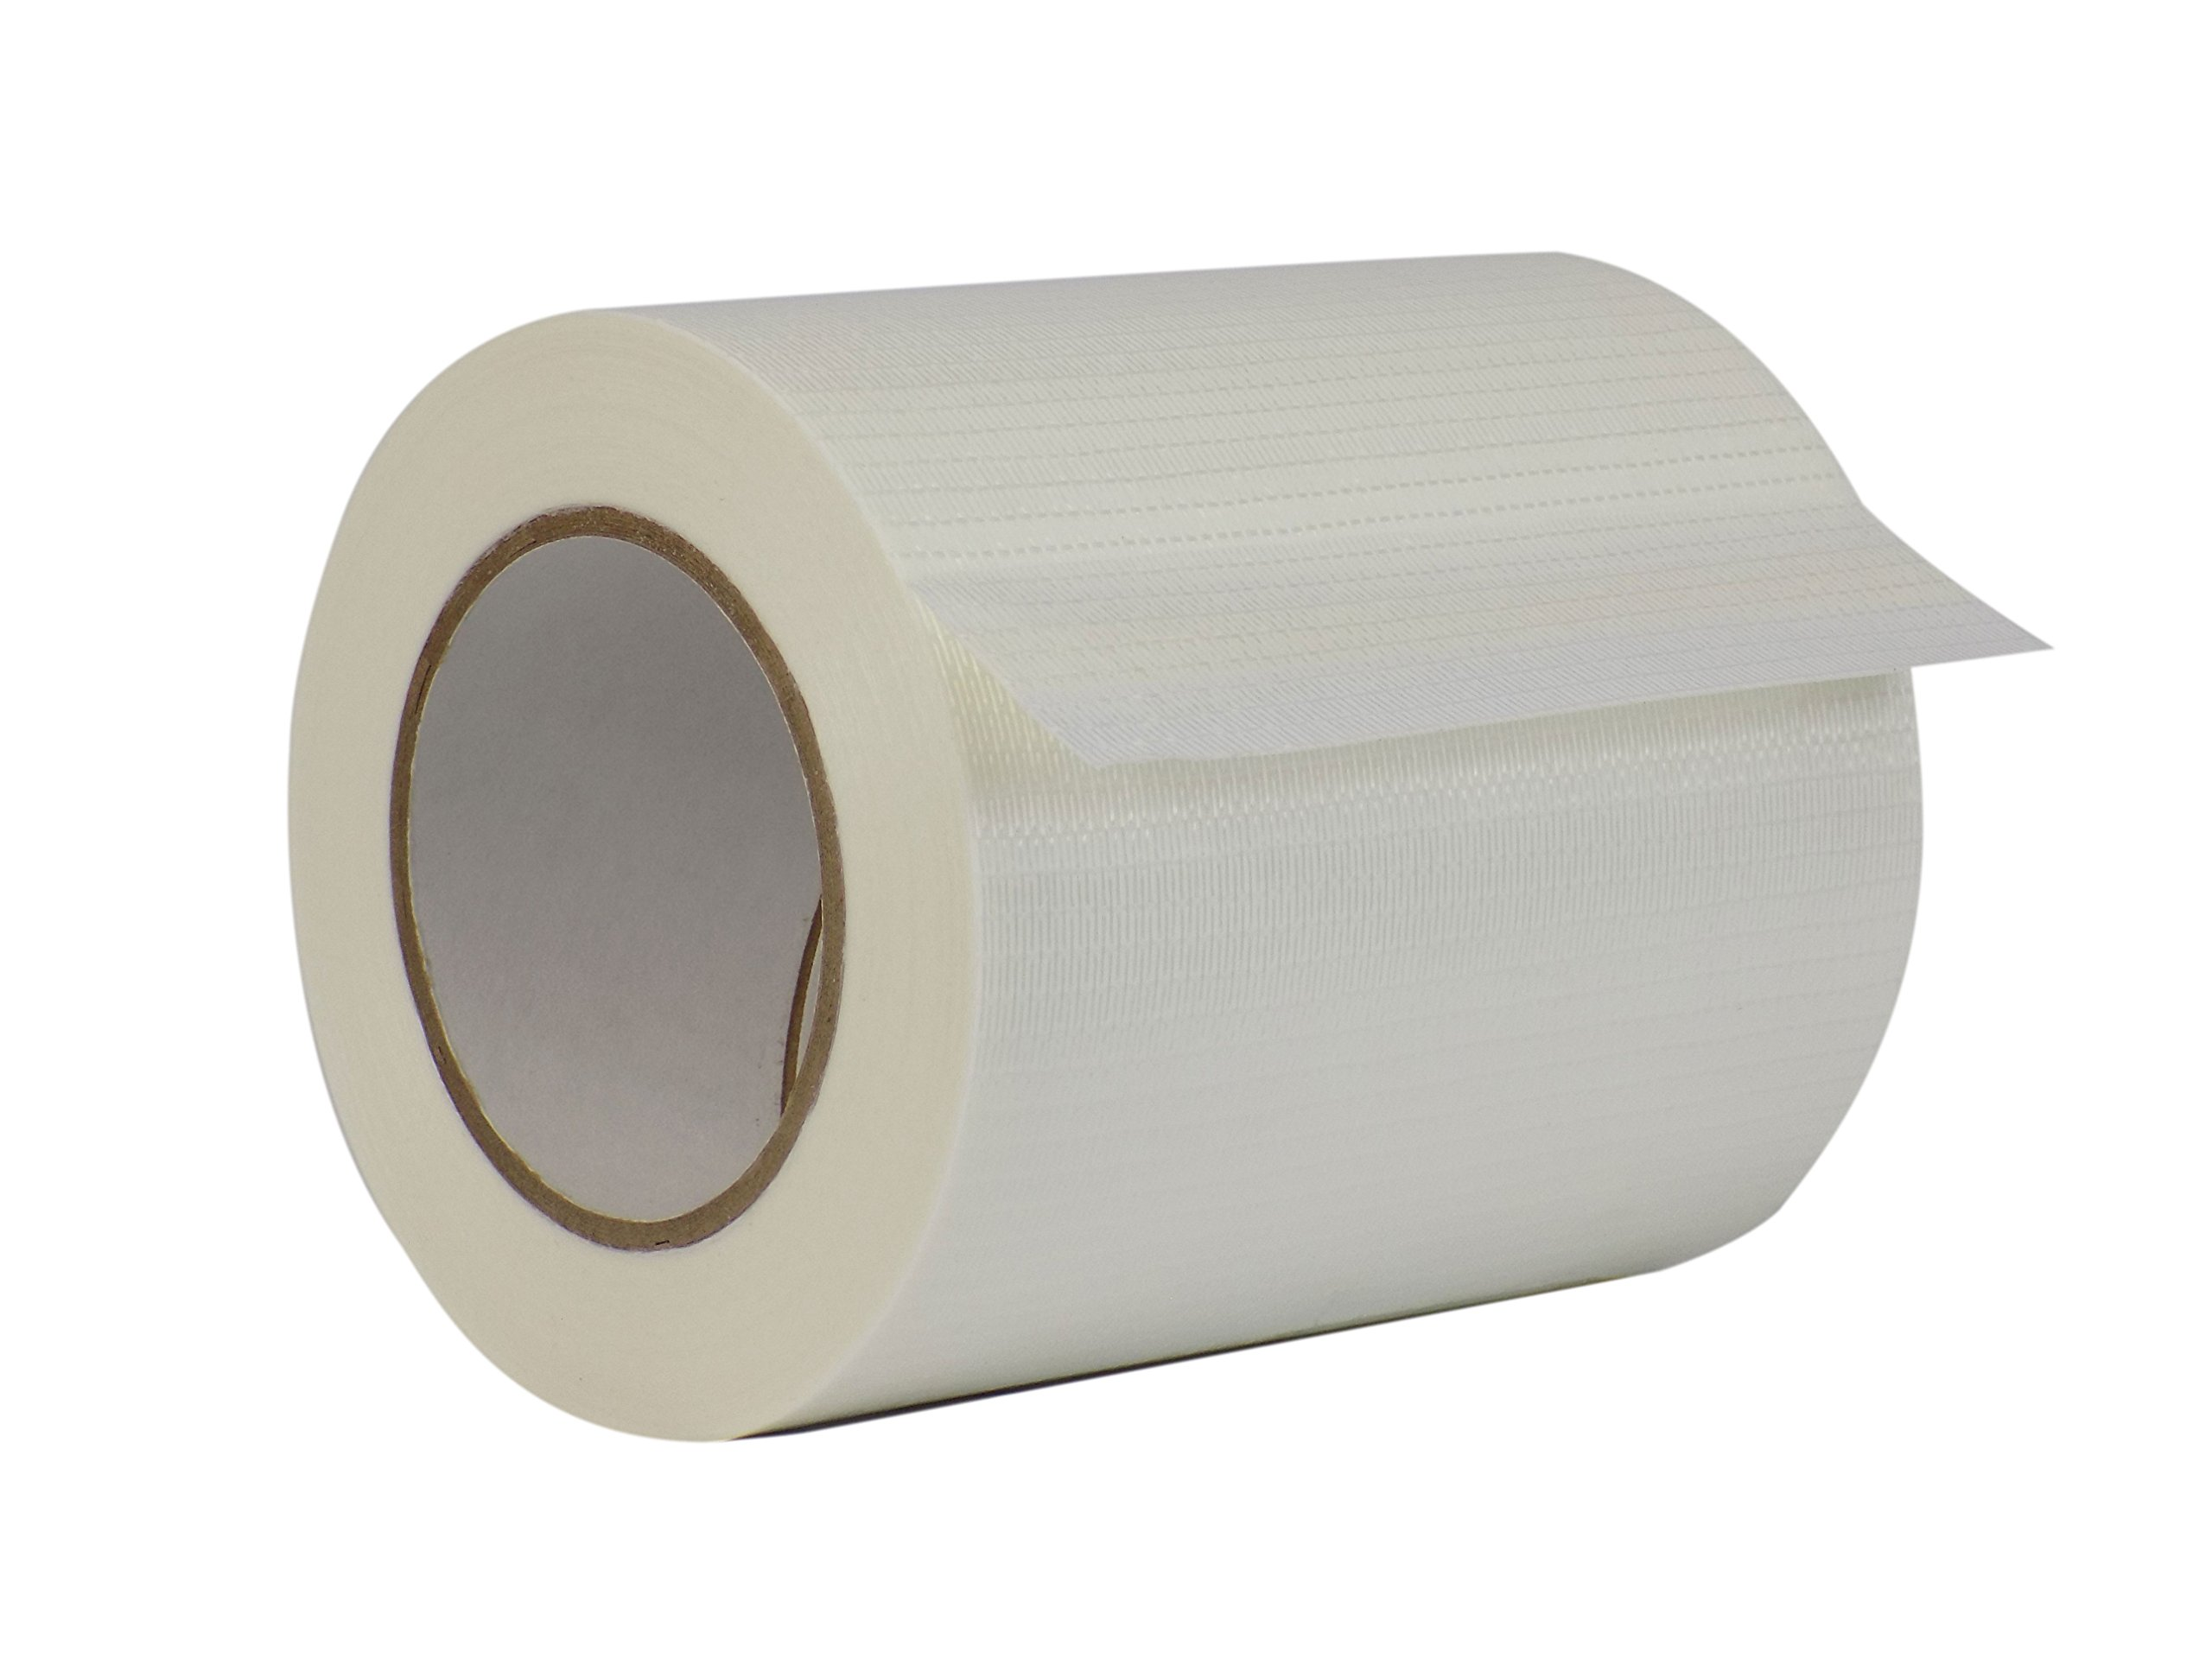 WOD FIL-835B/D Bi-Directional Fiberglass Reinforced Packing Filament Strapping Tape, High Adhesion Level, Tear Resistance, Hexayurt Tape (Available in Multiple Sizes): 6 in. x 60 yds. (Pack of 1)